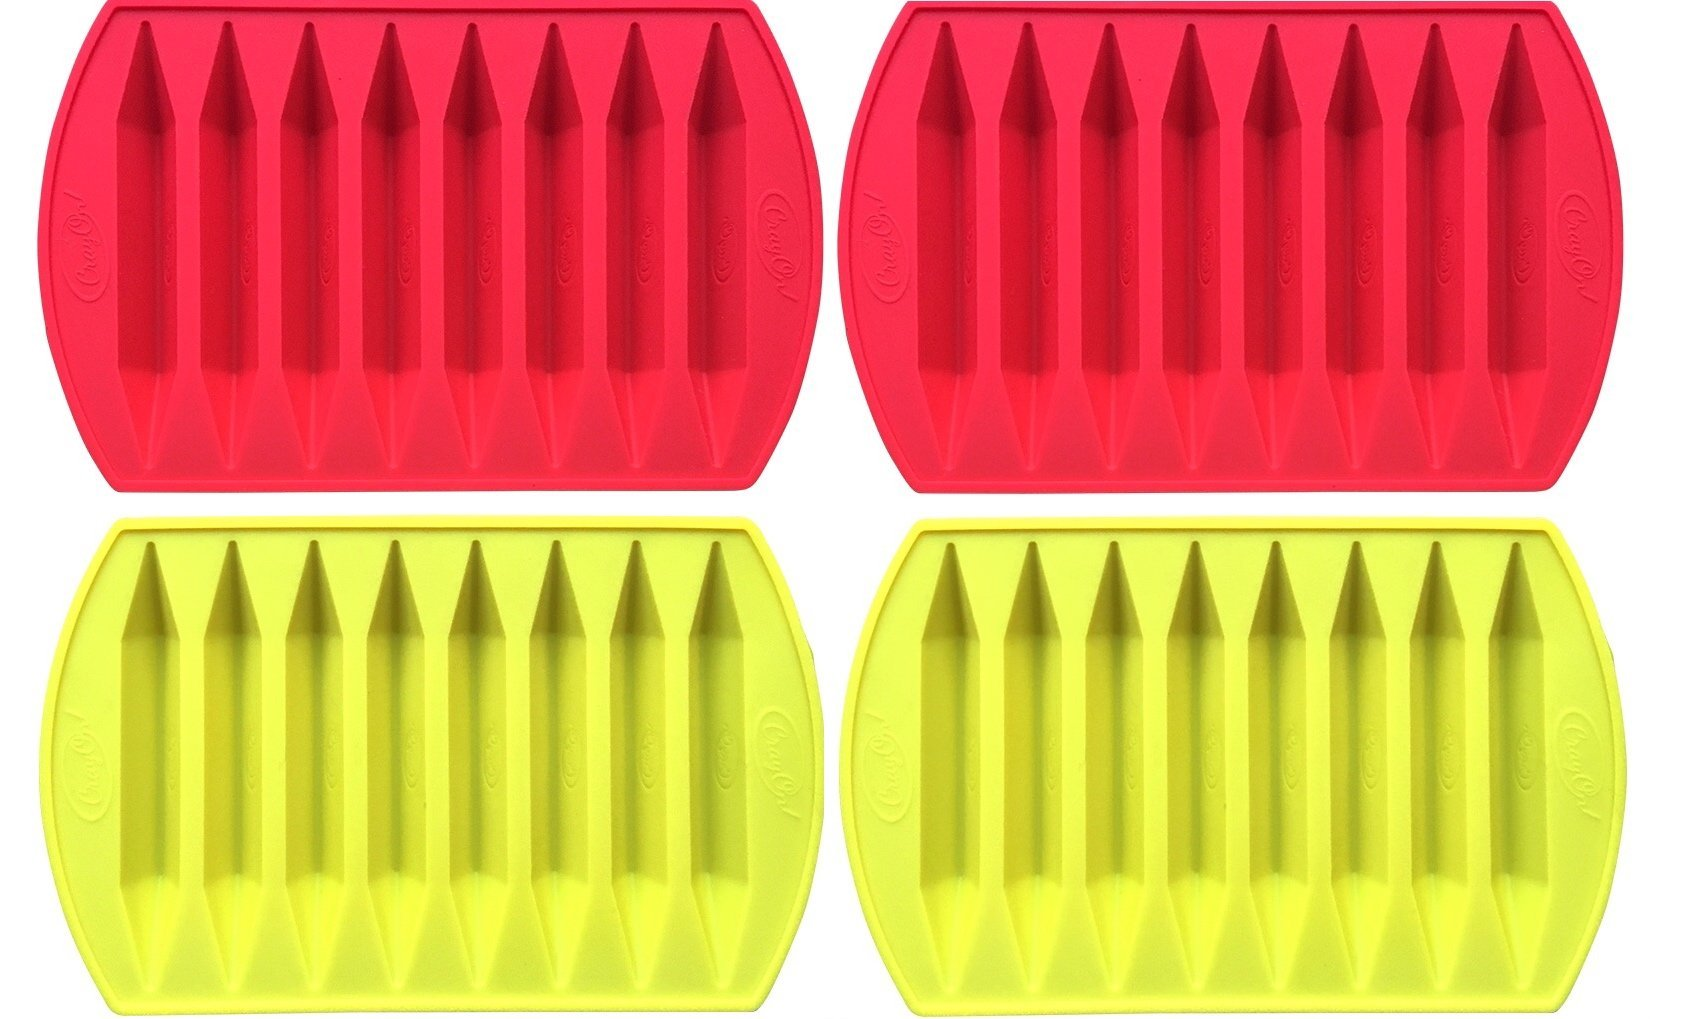 CrayOn 4 Double Tipped, Triangular Silicone Crayon Molds (Makes 32 Recycled Crayons Total) by My Fruit Shack